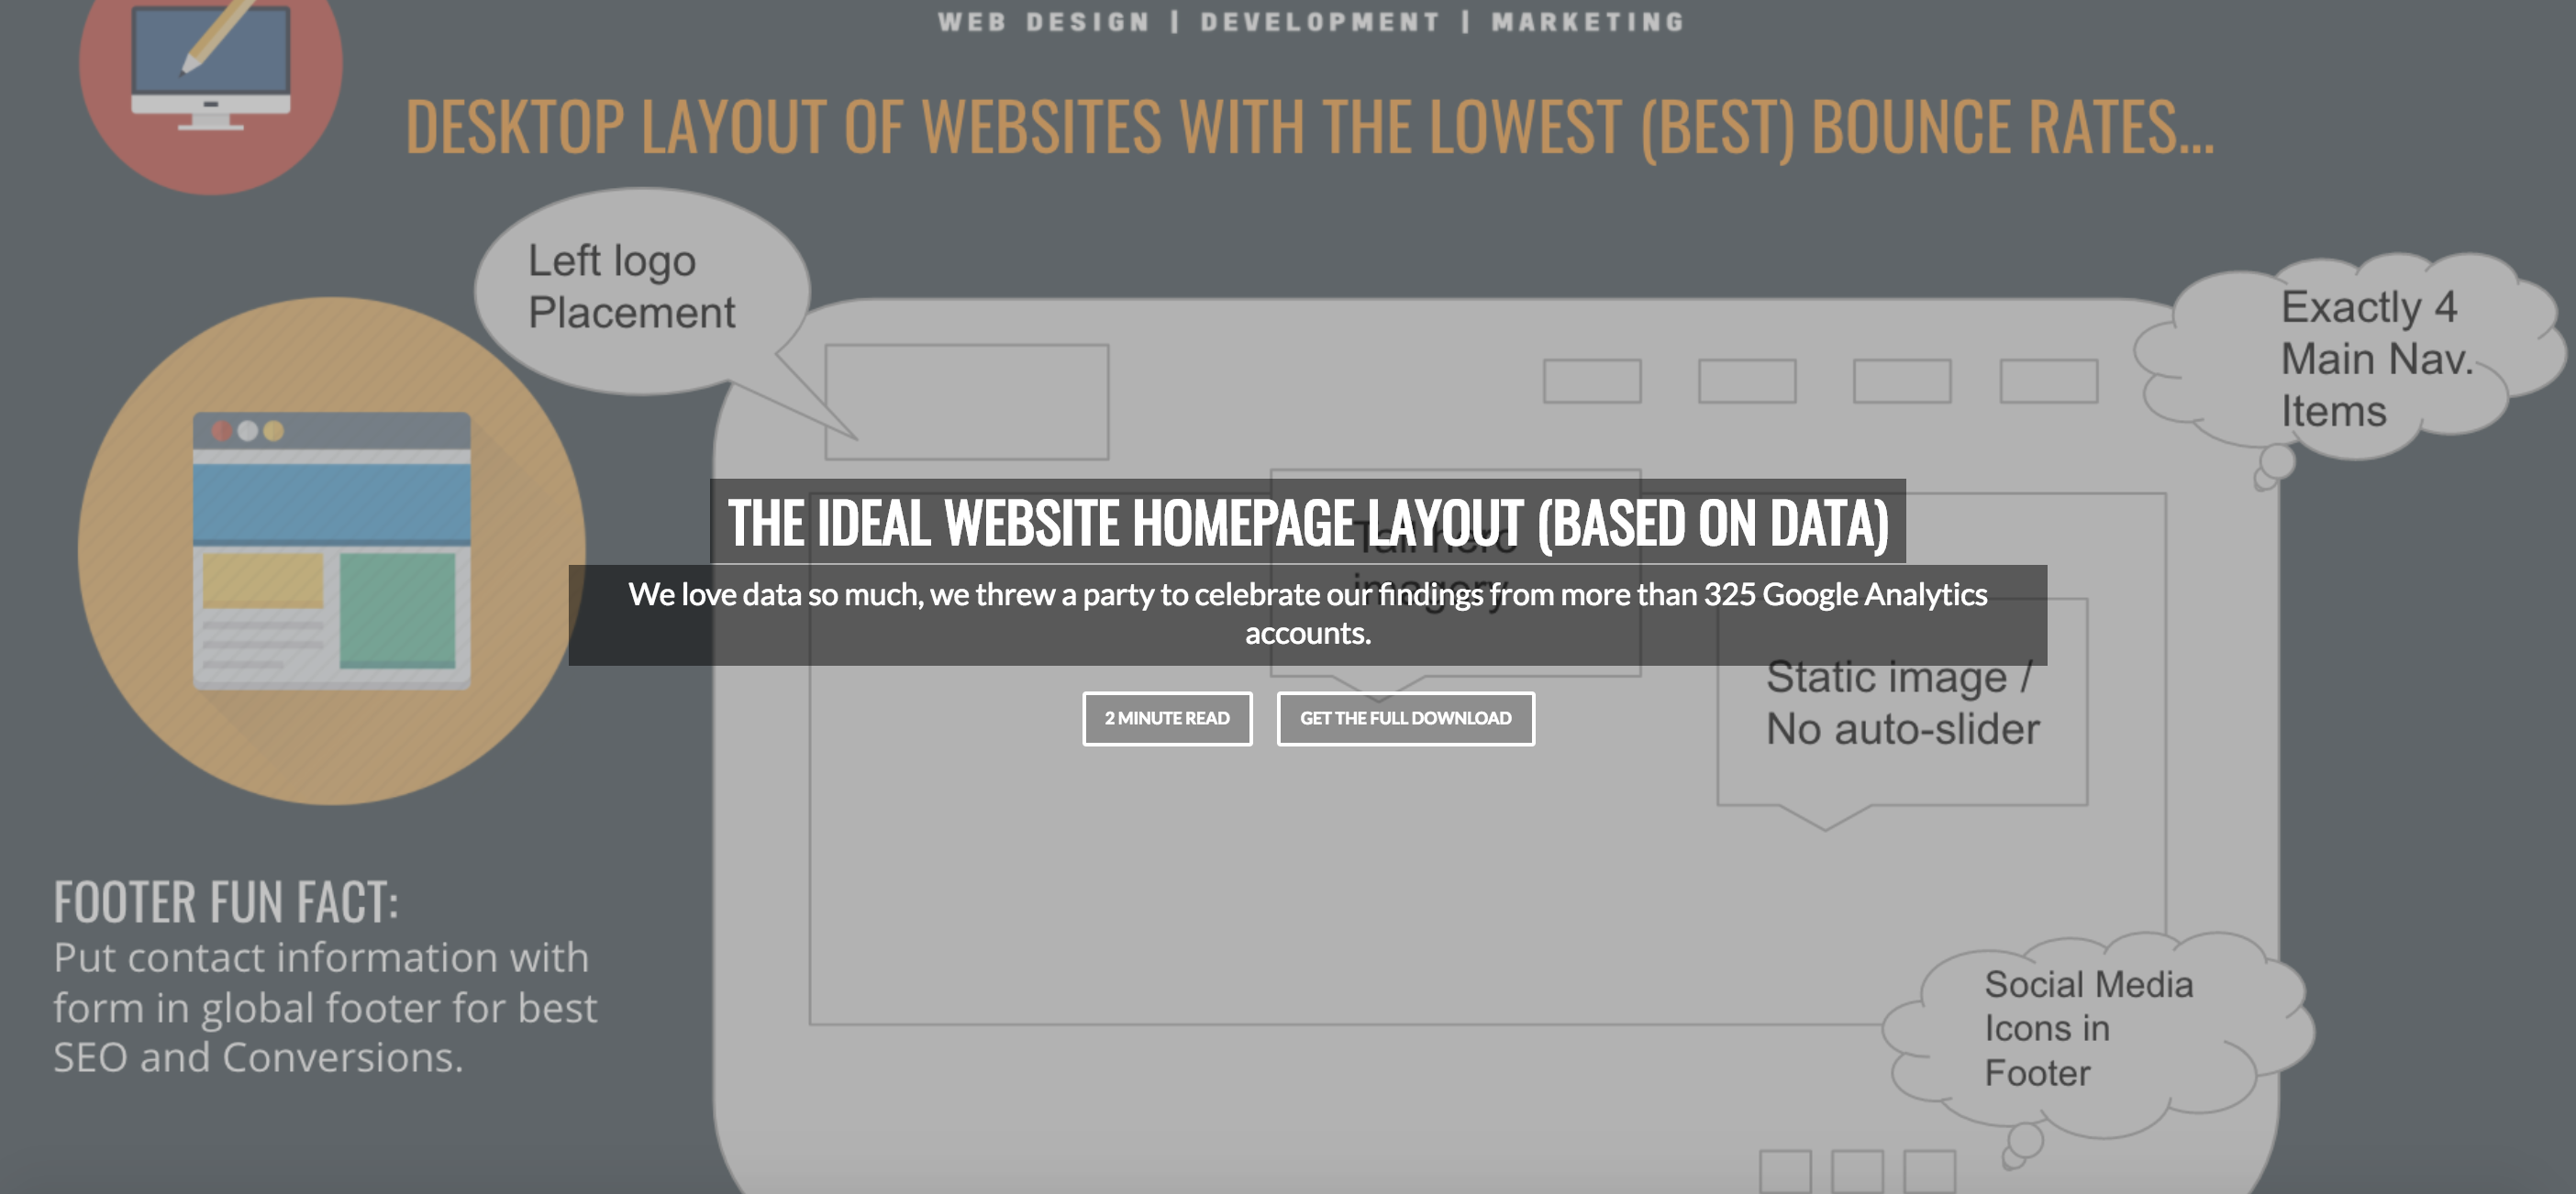 The Ideal Website Homepage Layout Based On Data Paul